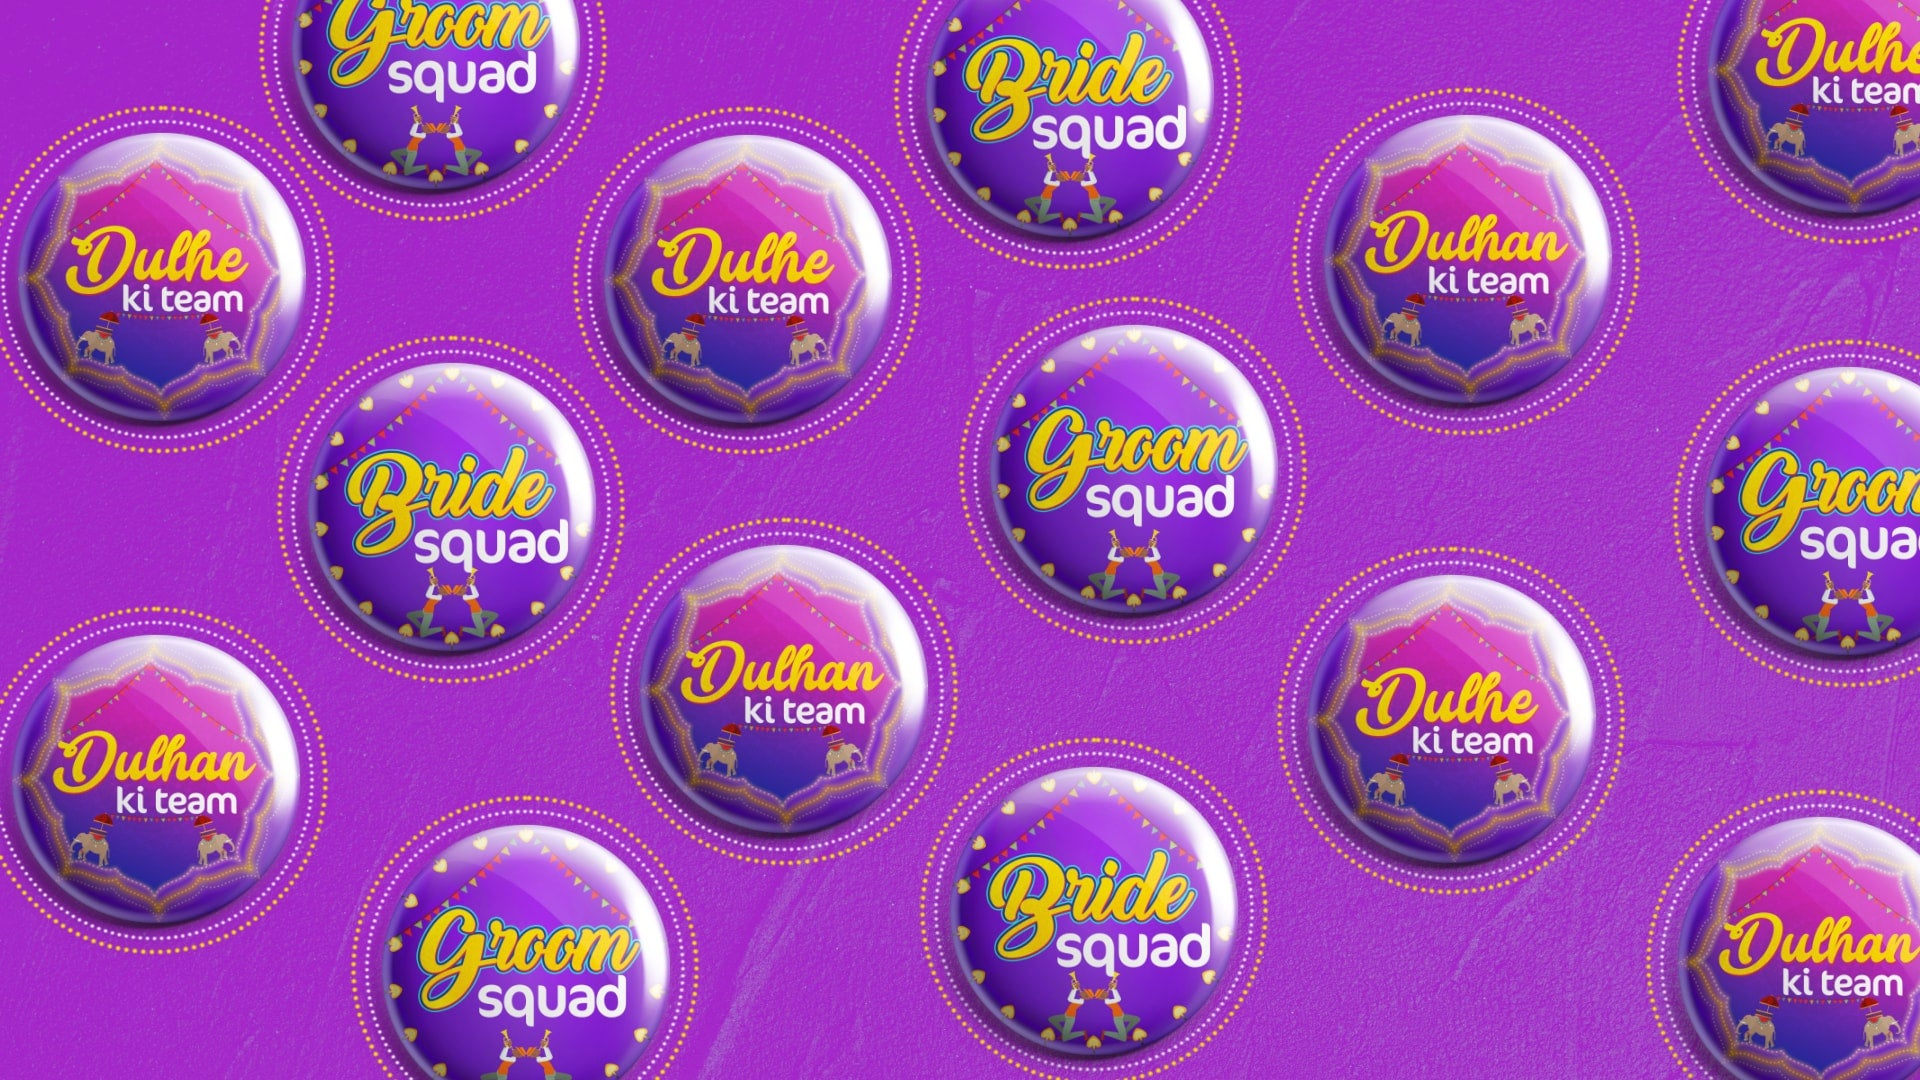 Grand Wedding 2.0 Badges